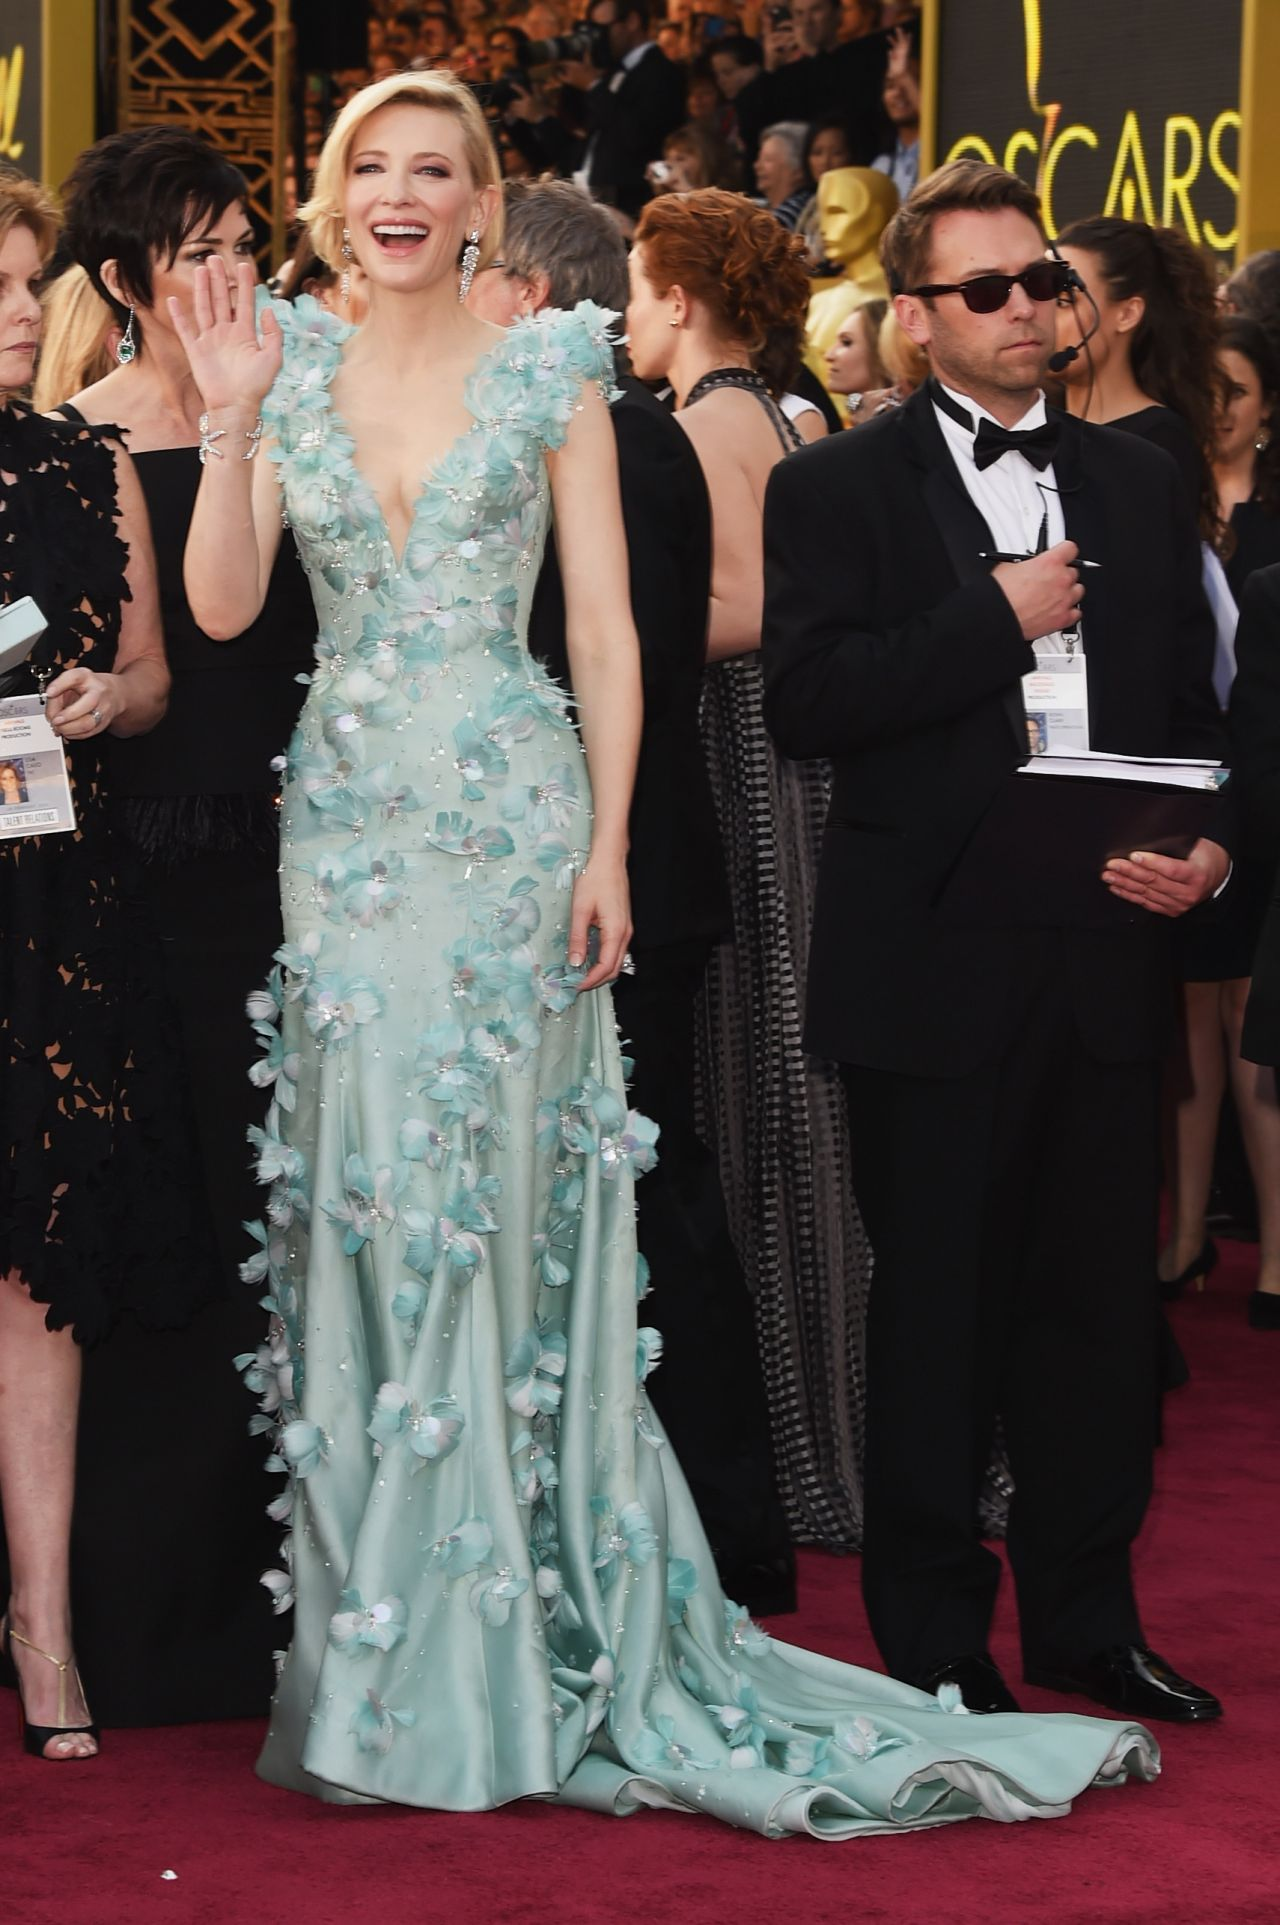 cate-blanchett-oscars-2016-in-hollywood-ca-2-28-2016-4